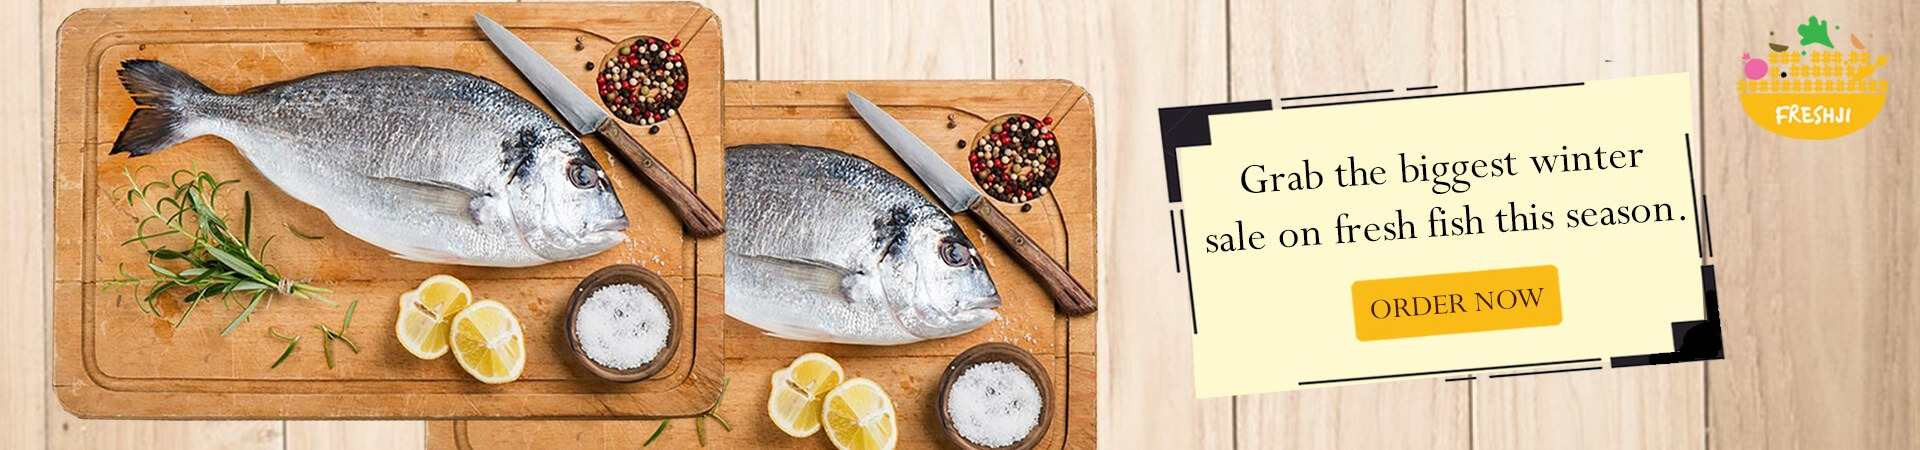 Order Online Fresh Fish with Freshji Online Store